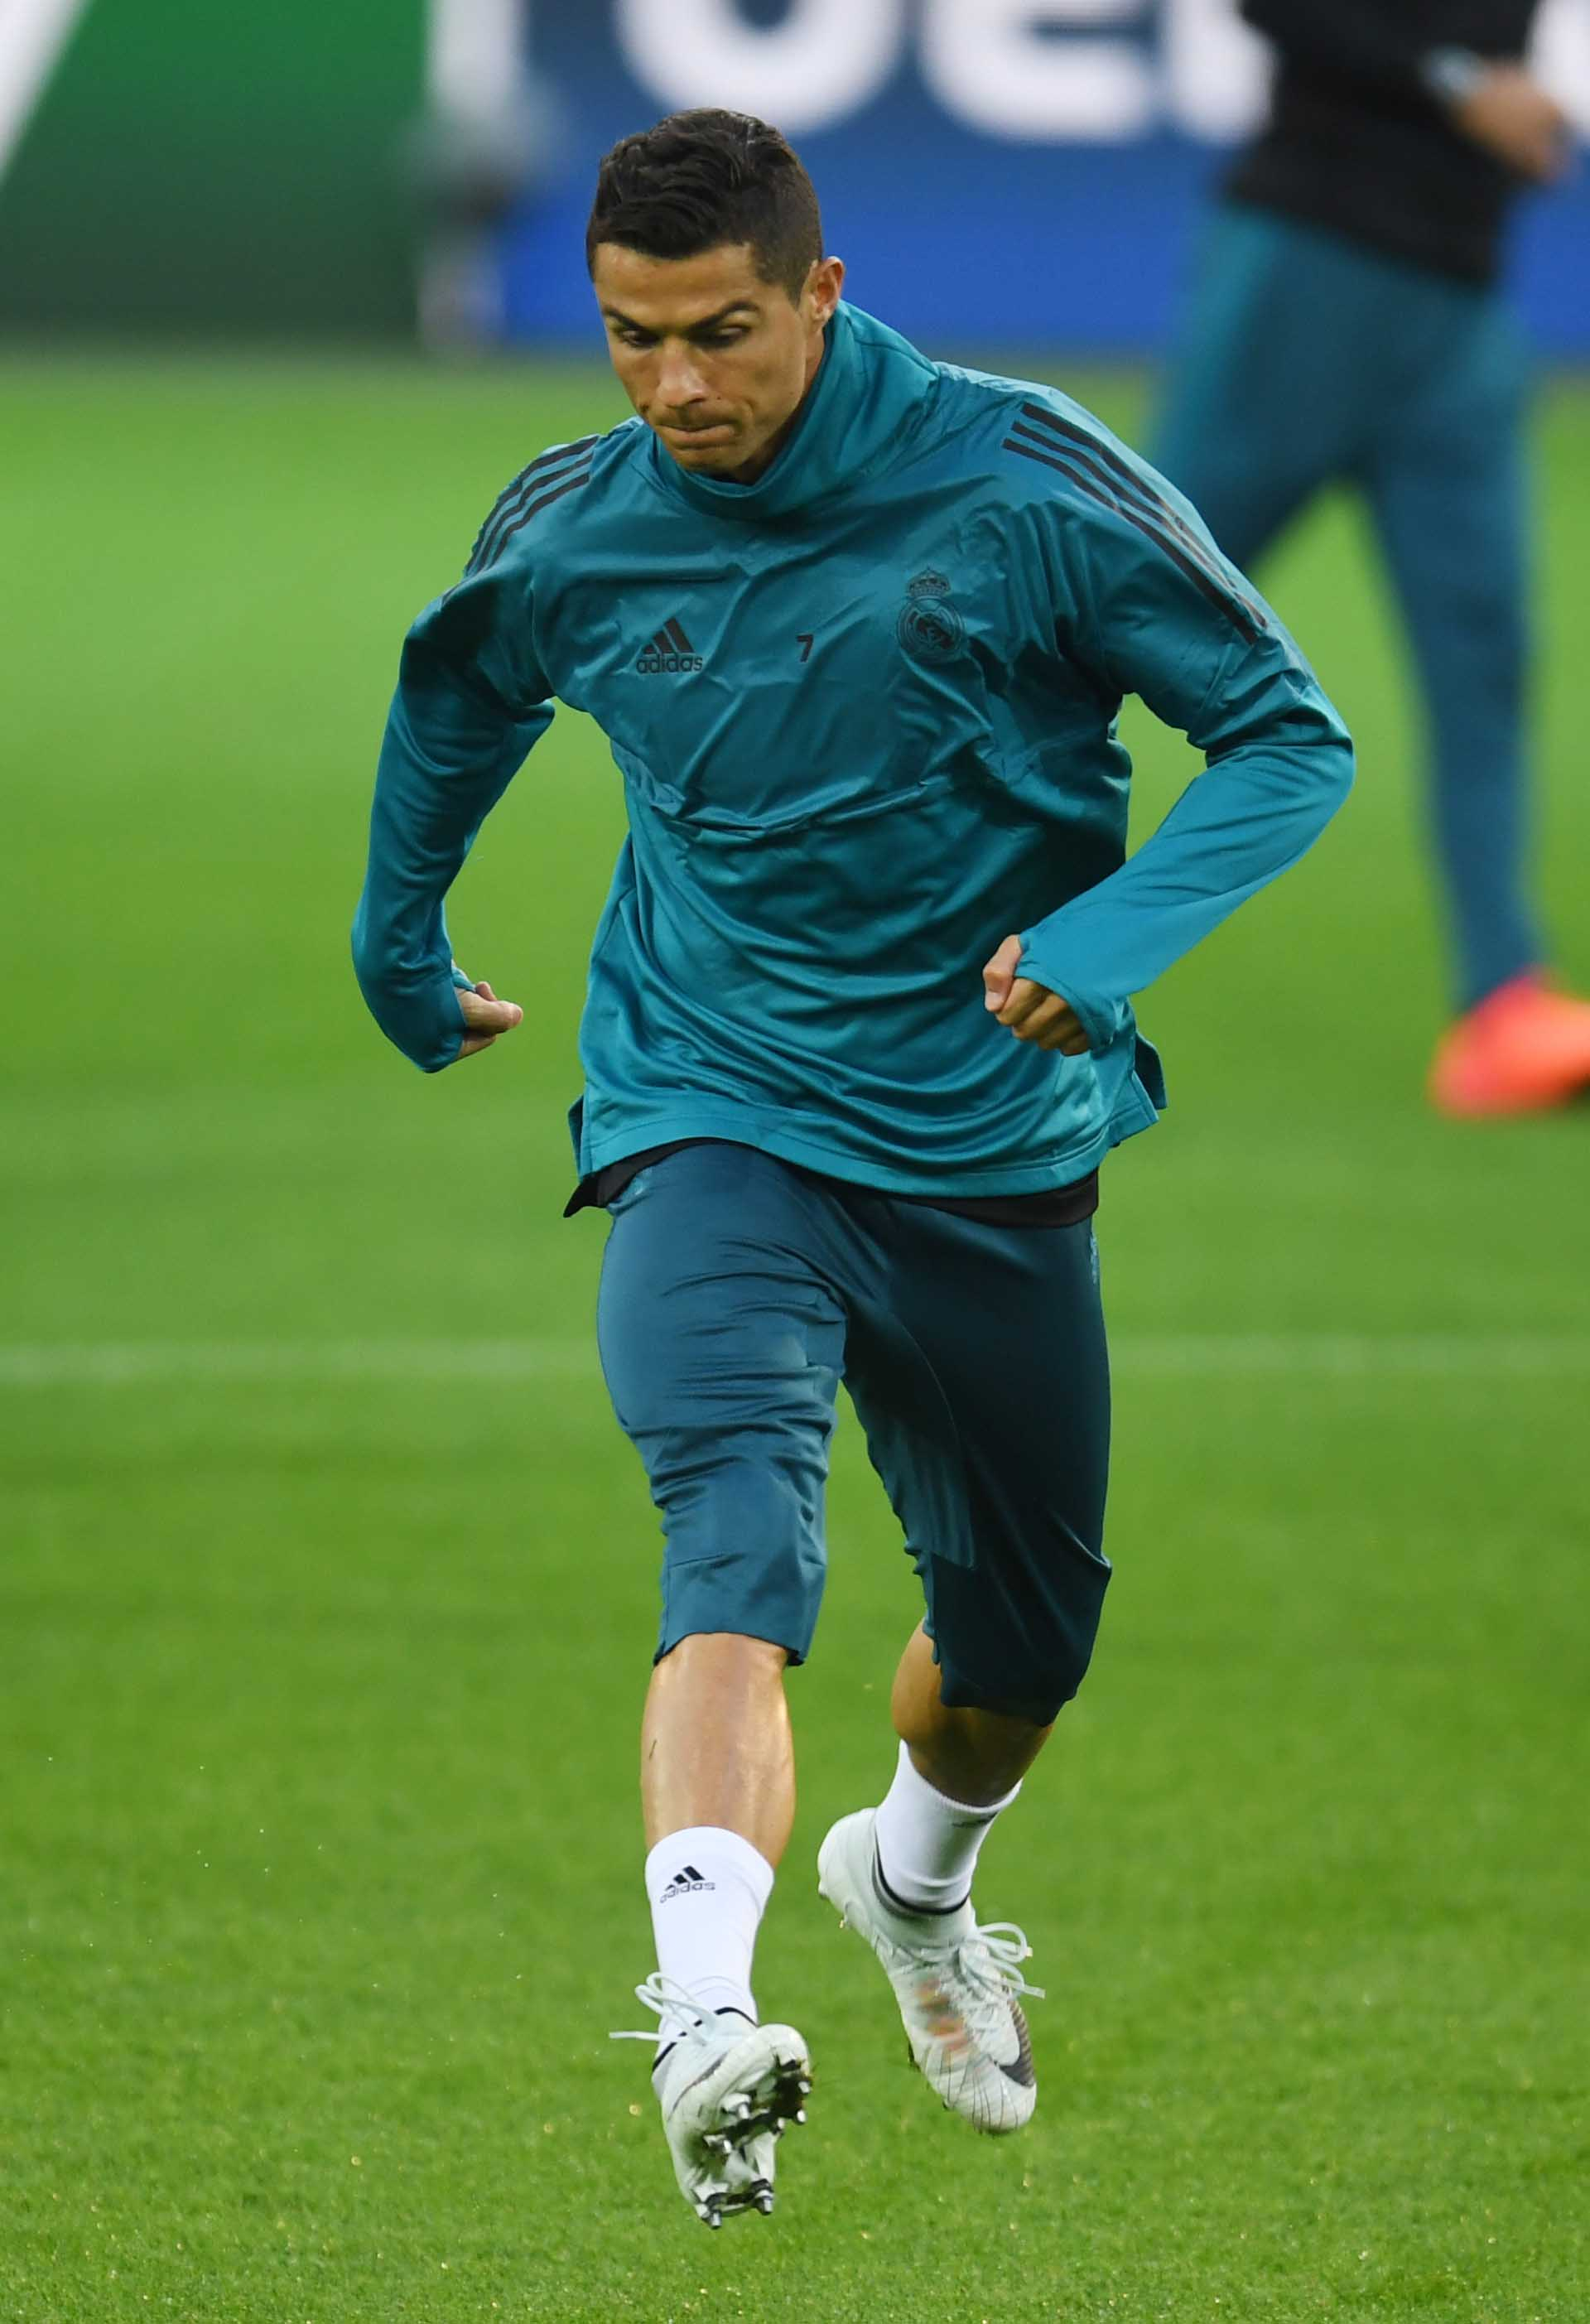 CR7 Trains in Signature Chapter 5 Mercurial - SoccerBible 084a3f090